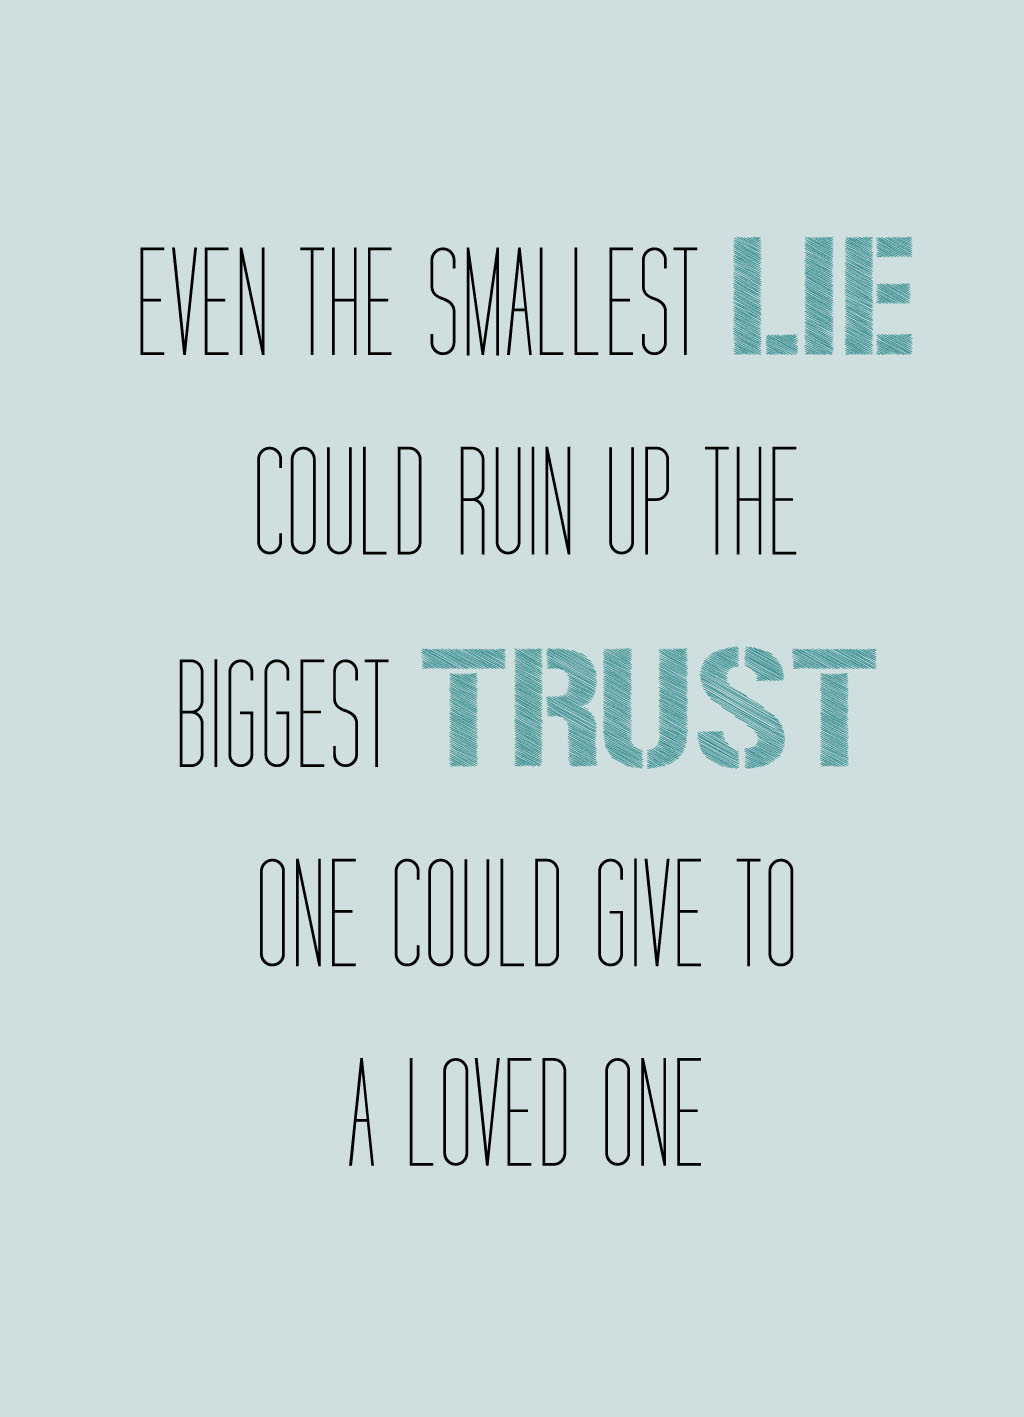 Quote of the Day :: Even the smallest lie could ruin the biggest trust one could give to a loved one